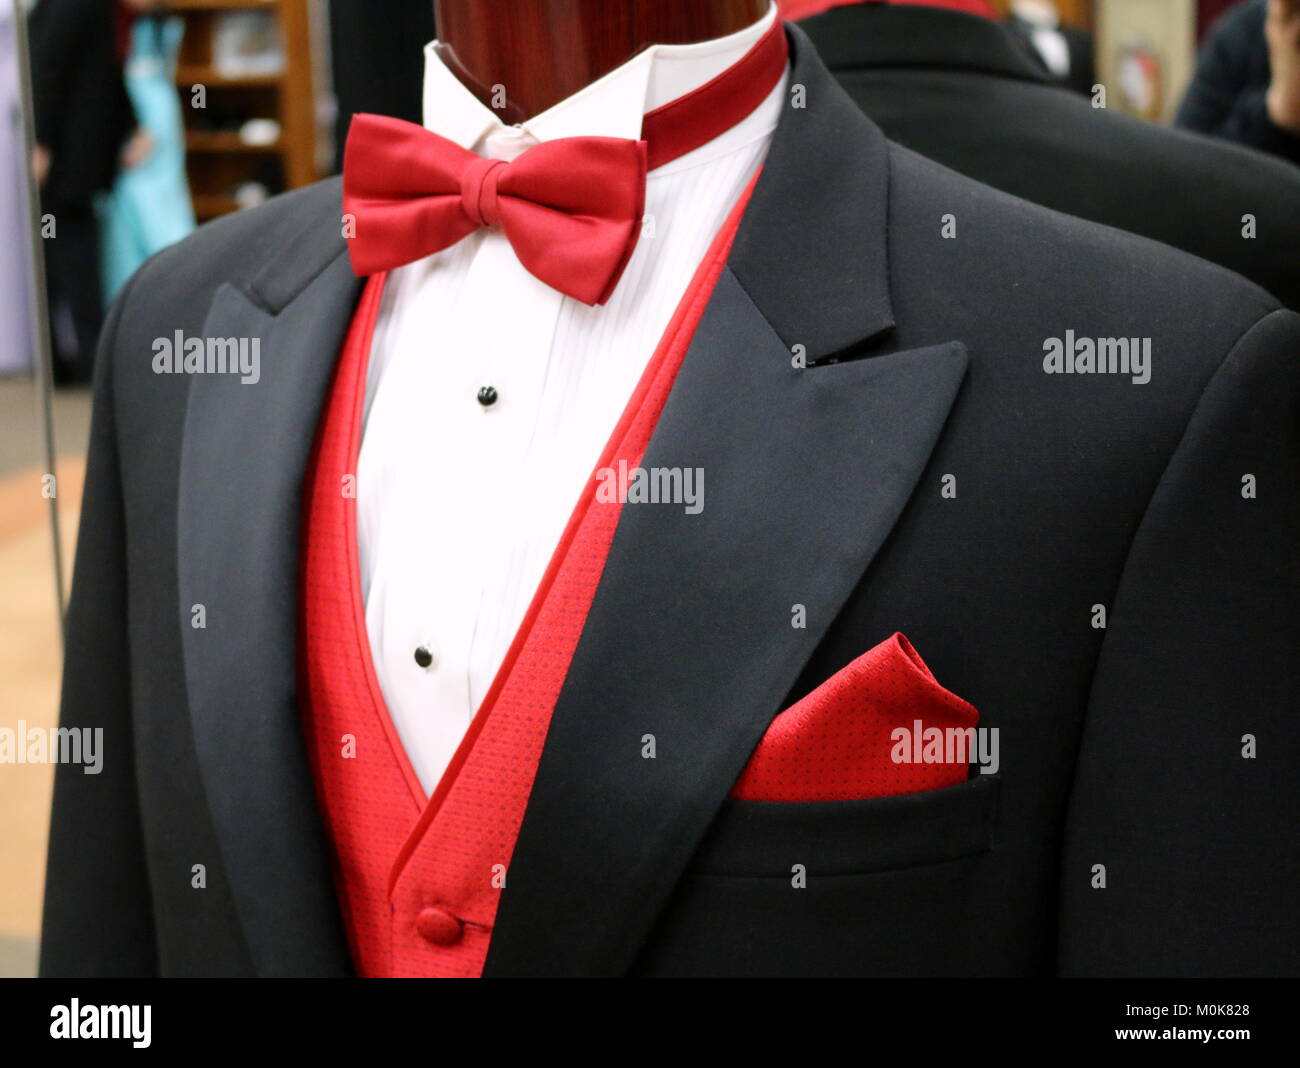 7288fd35c102 Black Tuxedo With Red Bow Tie Stock Photo: 172527104 - Alamy